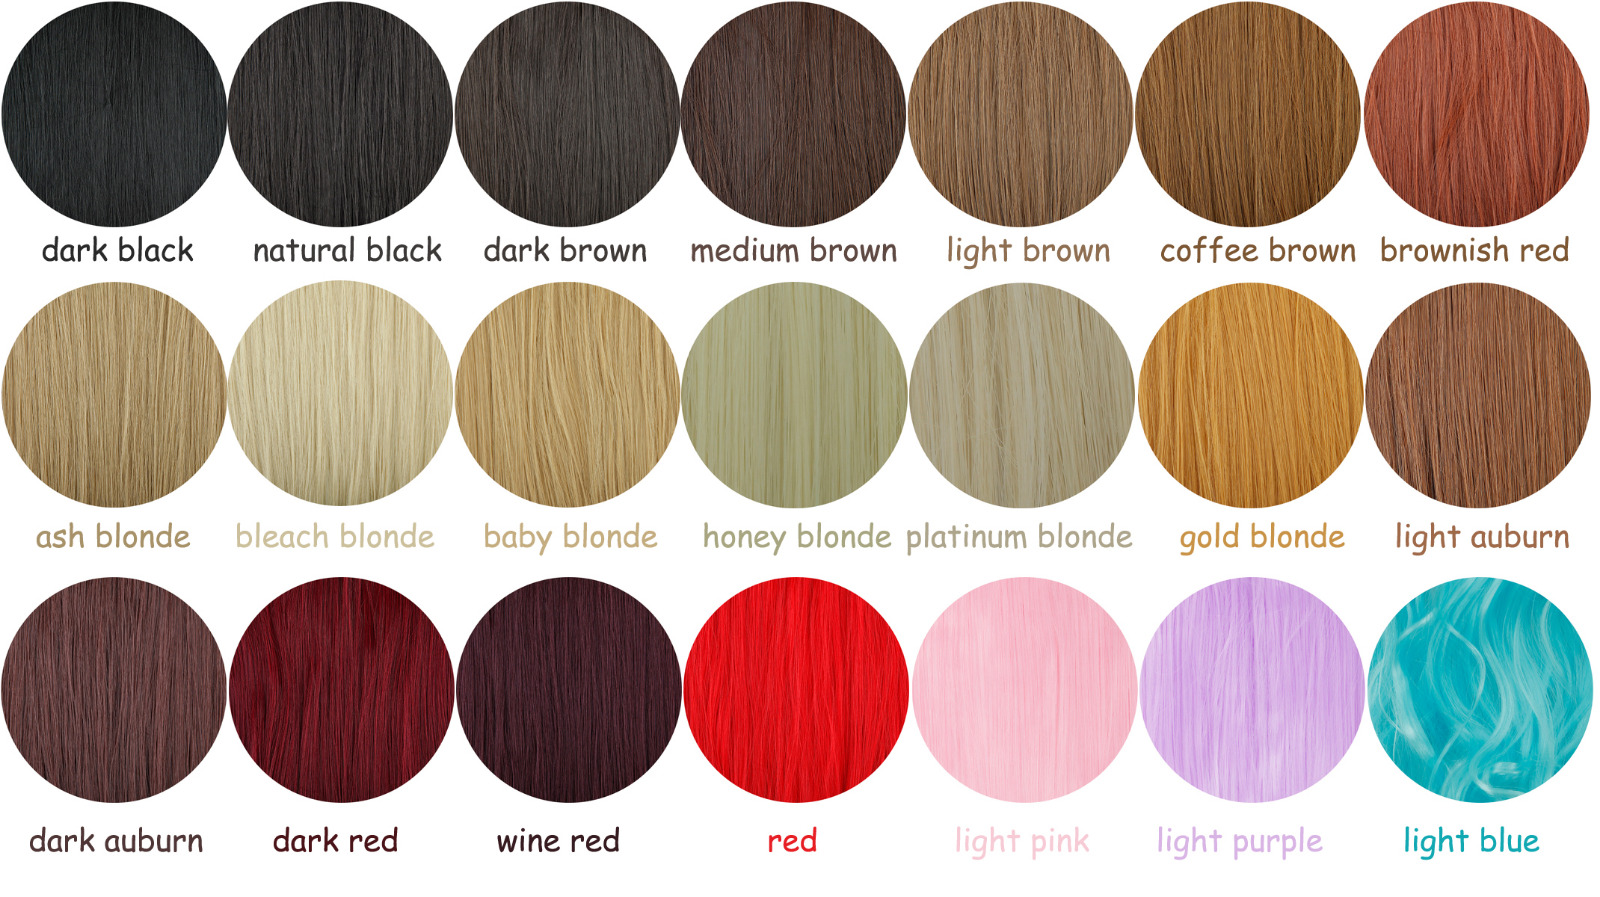 Ombre real new women clip in hair extensions 34 full head brown colors chart nvjuhfo Choice Image